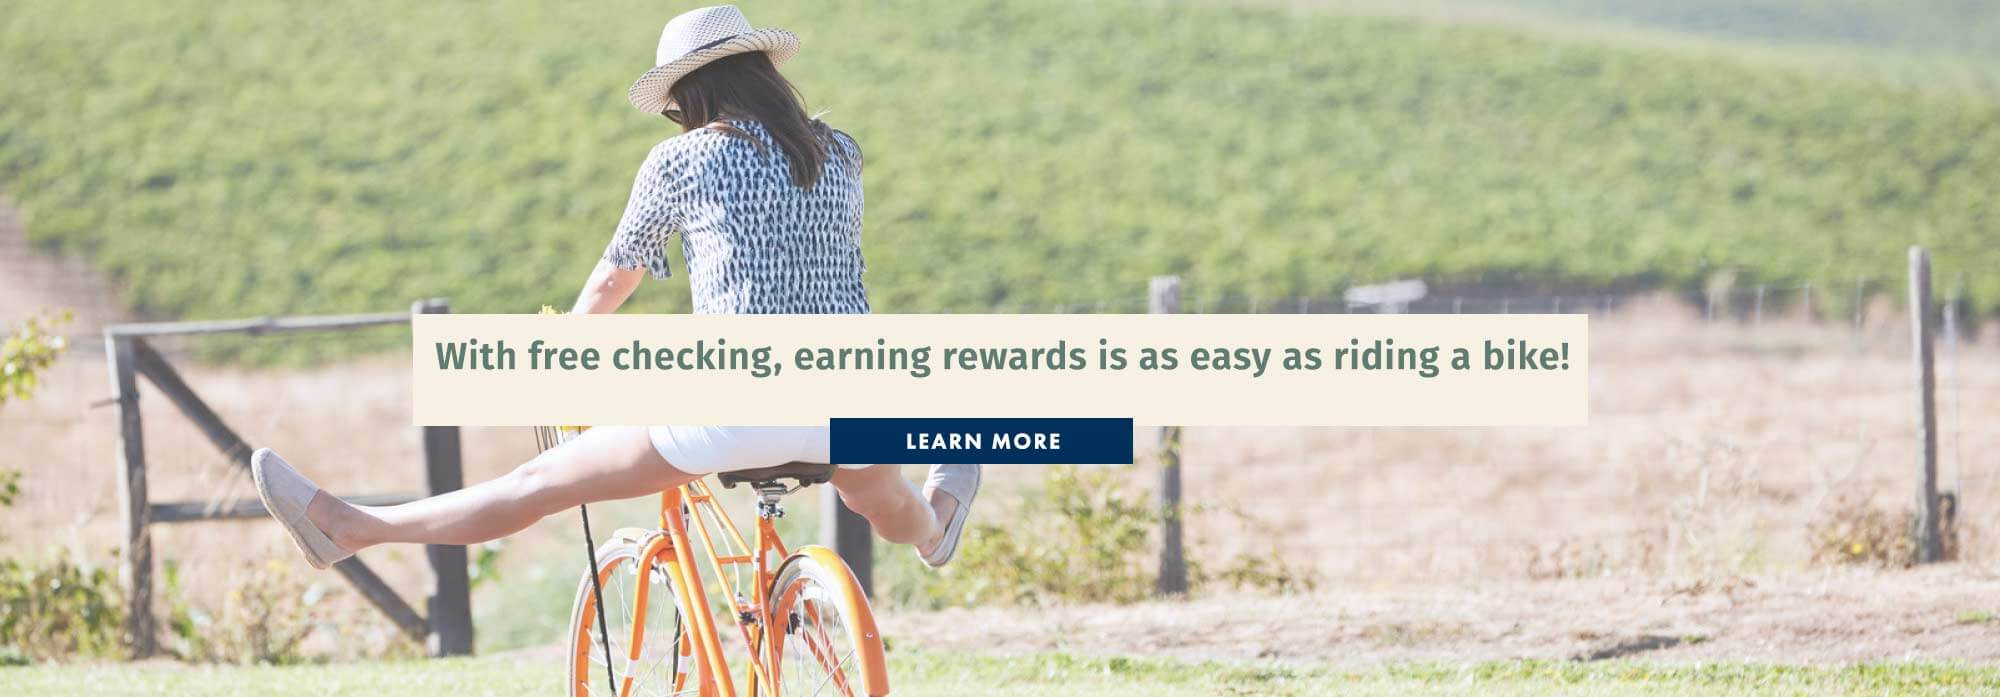 With free checking, earning rewards is as easy as riding a bike!